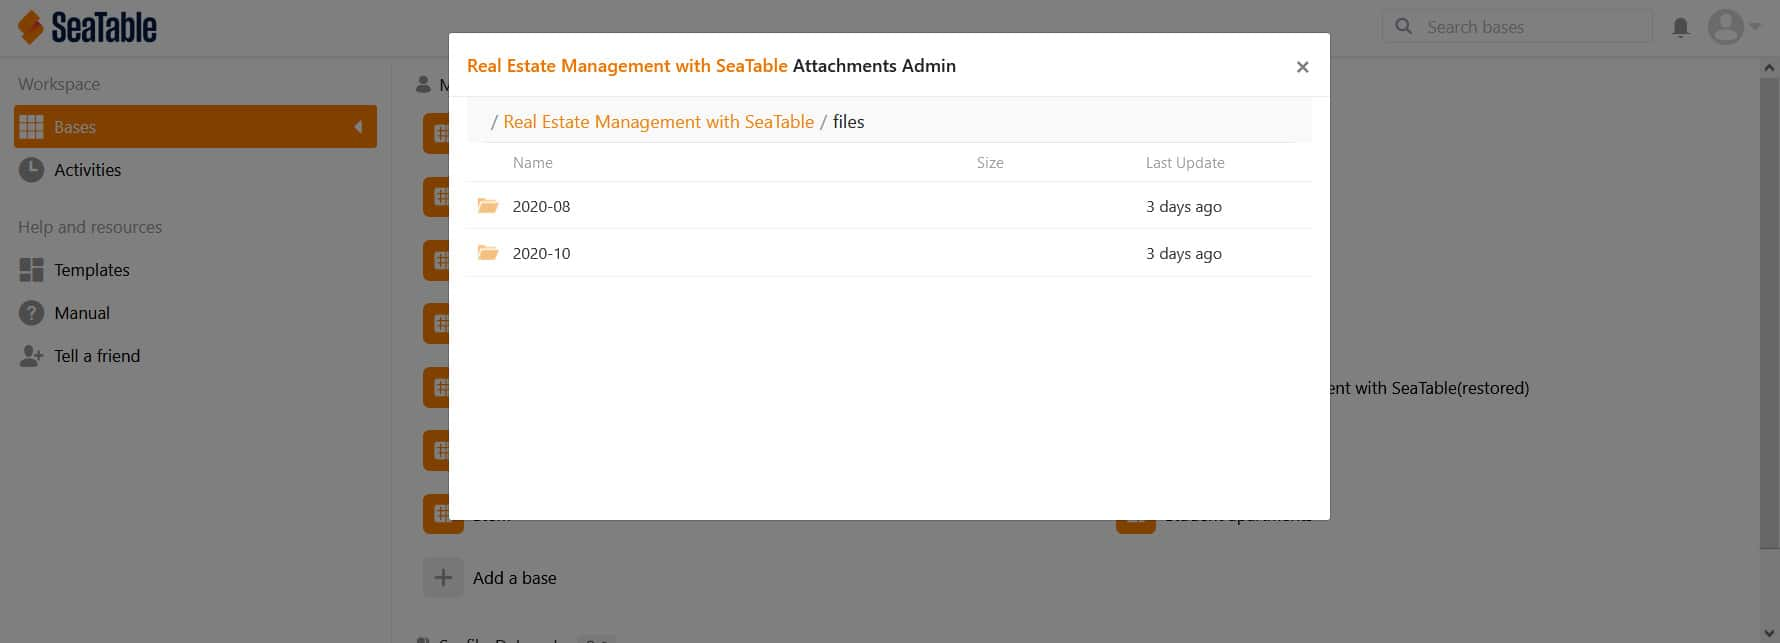 Asset management in SeaTable 1.6